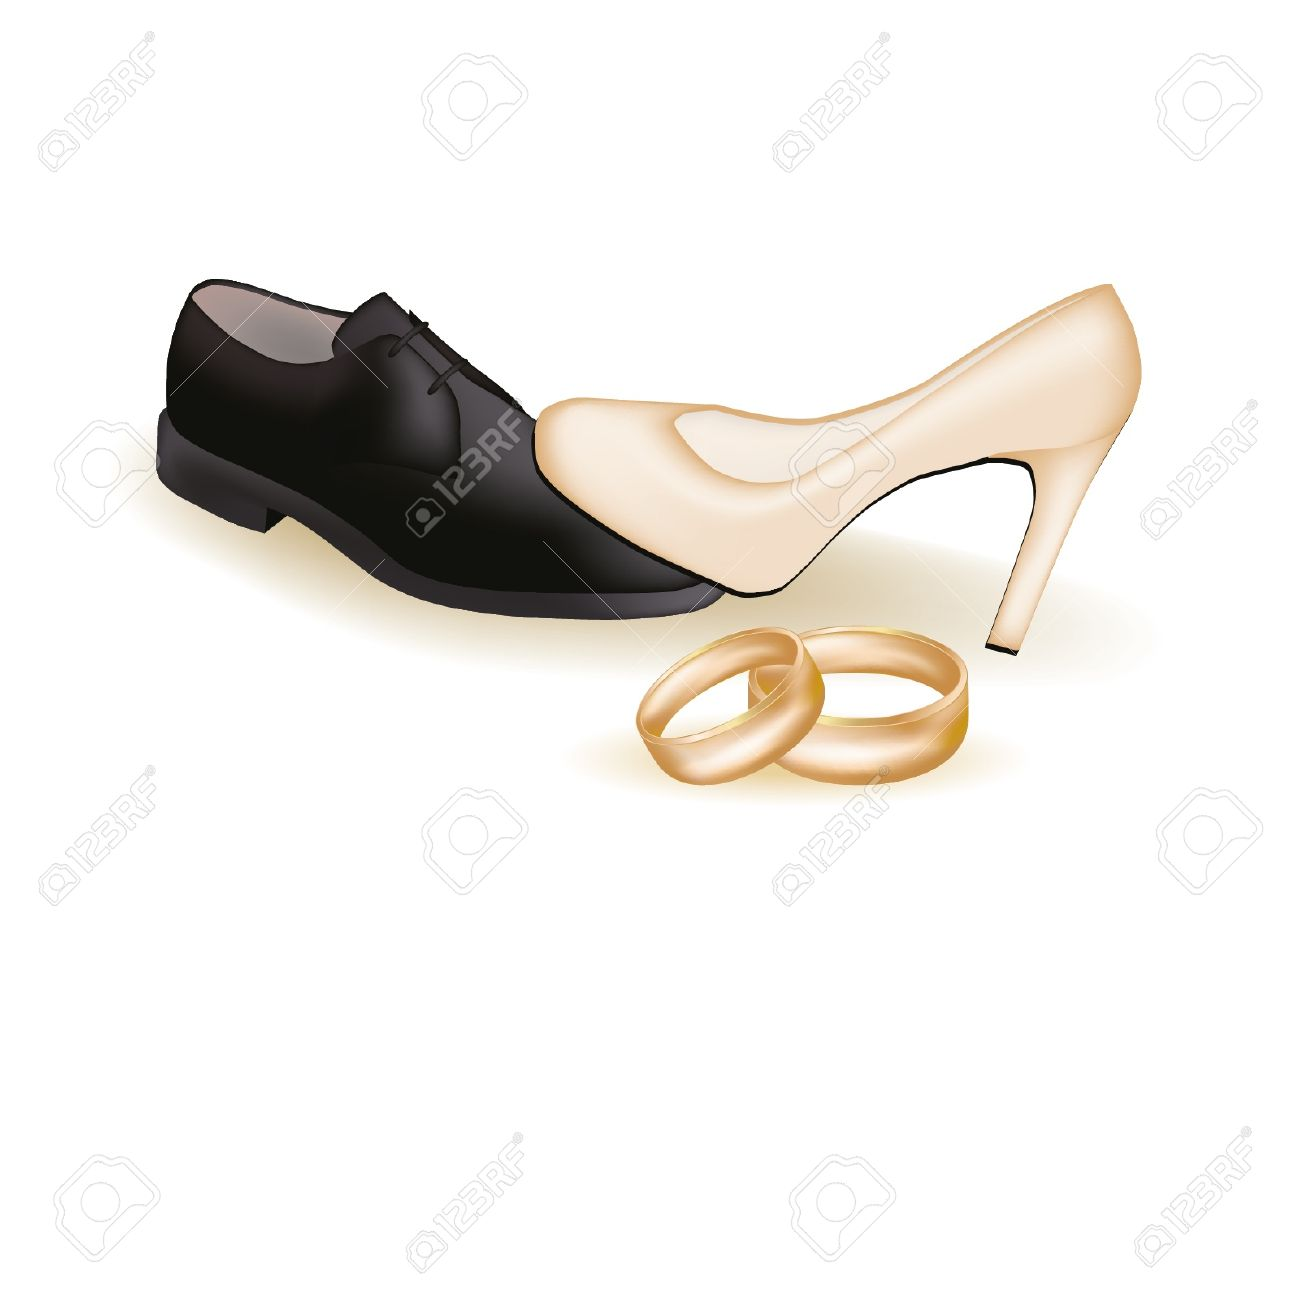 62737e6a9d399 Wedding shoes and golden rings, illustration